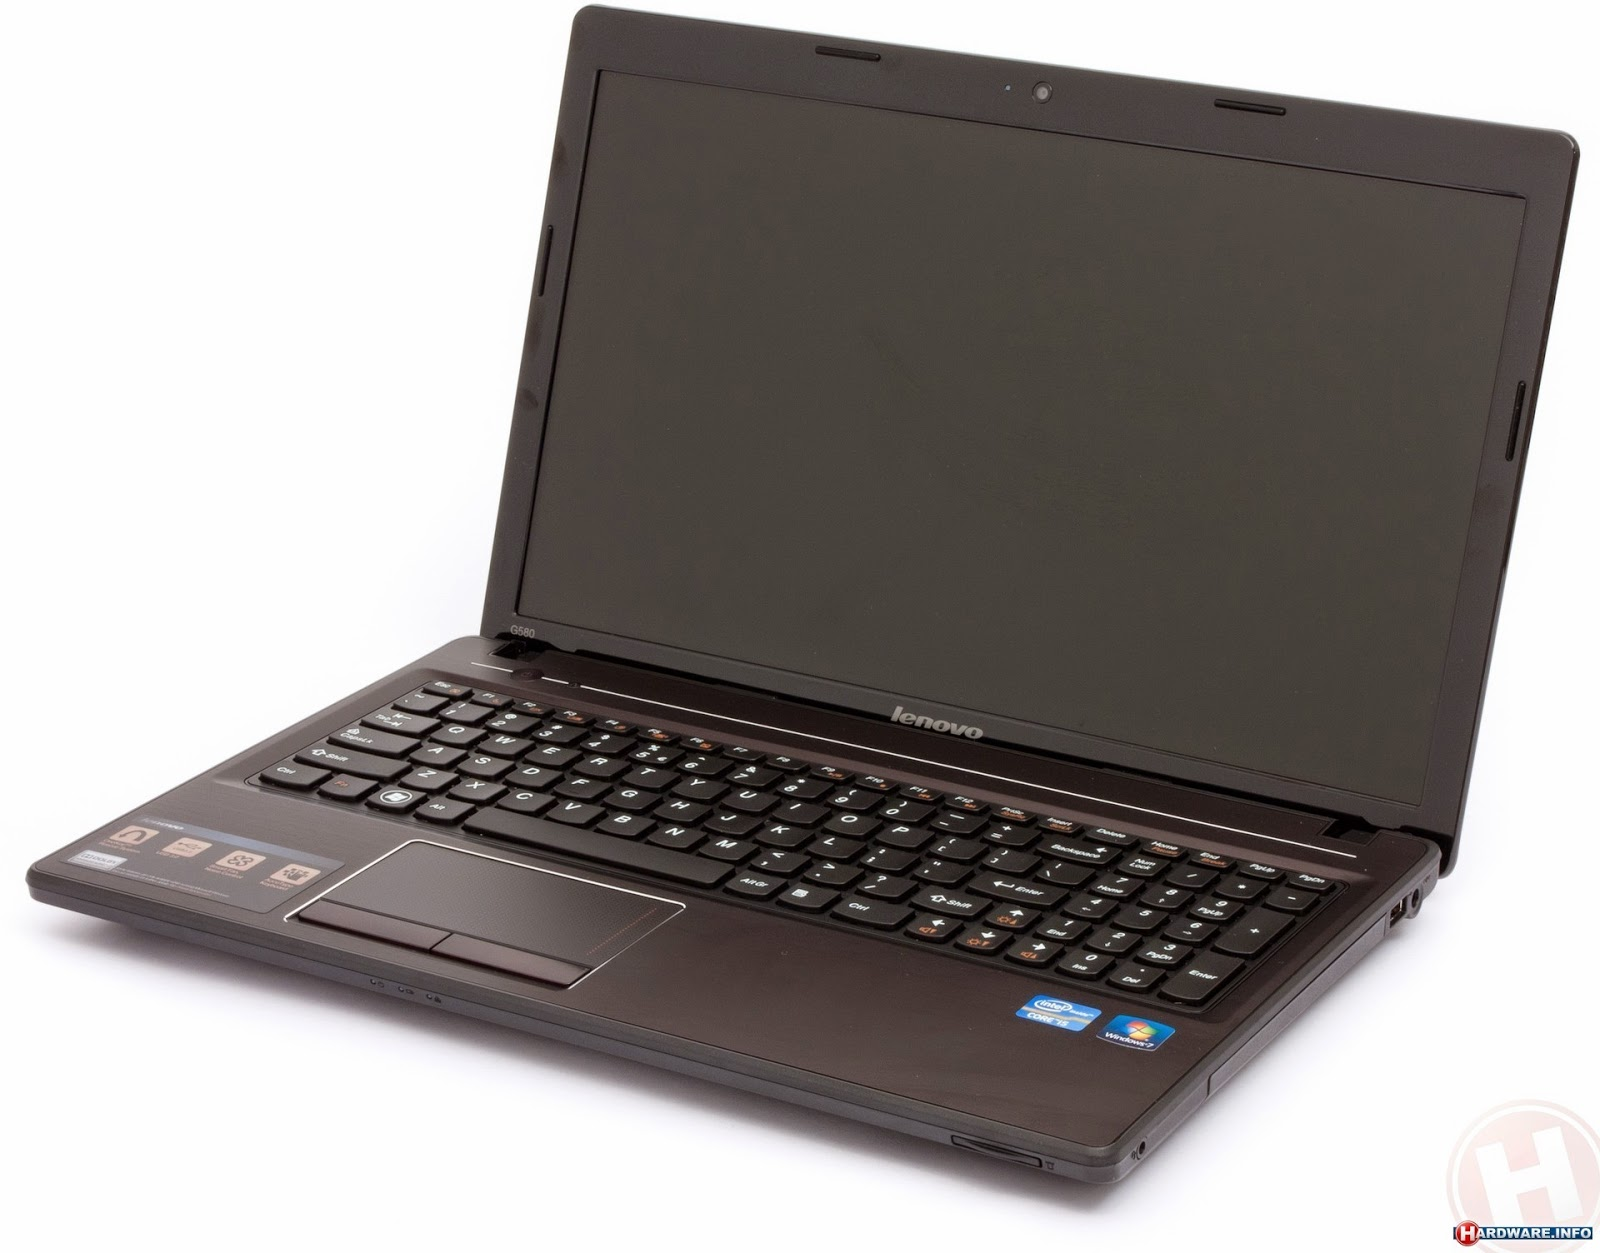 Lenovo Ideapad G580 Driver Download for Windows 7 and Windows 8/8.1